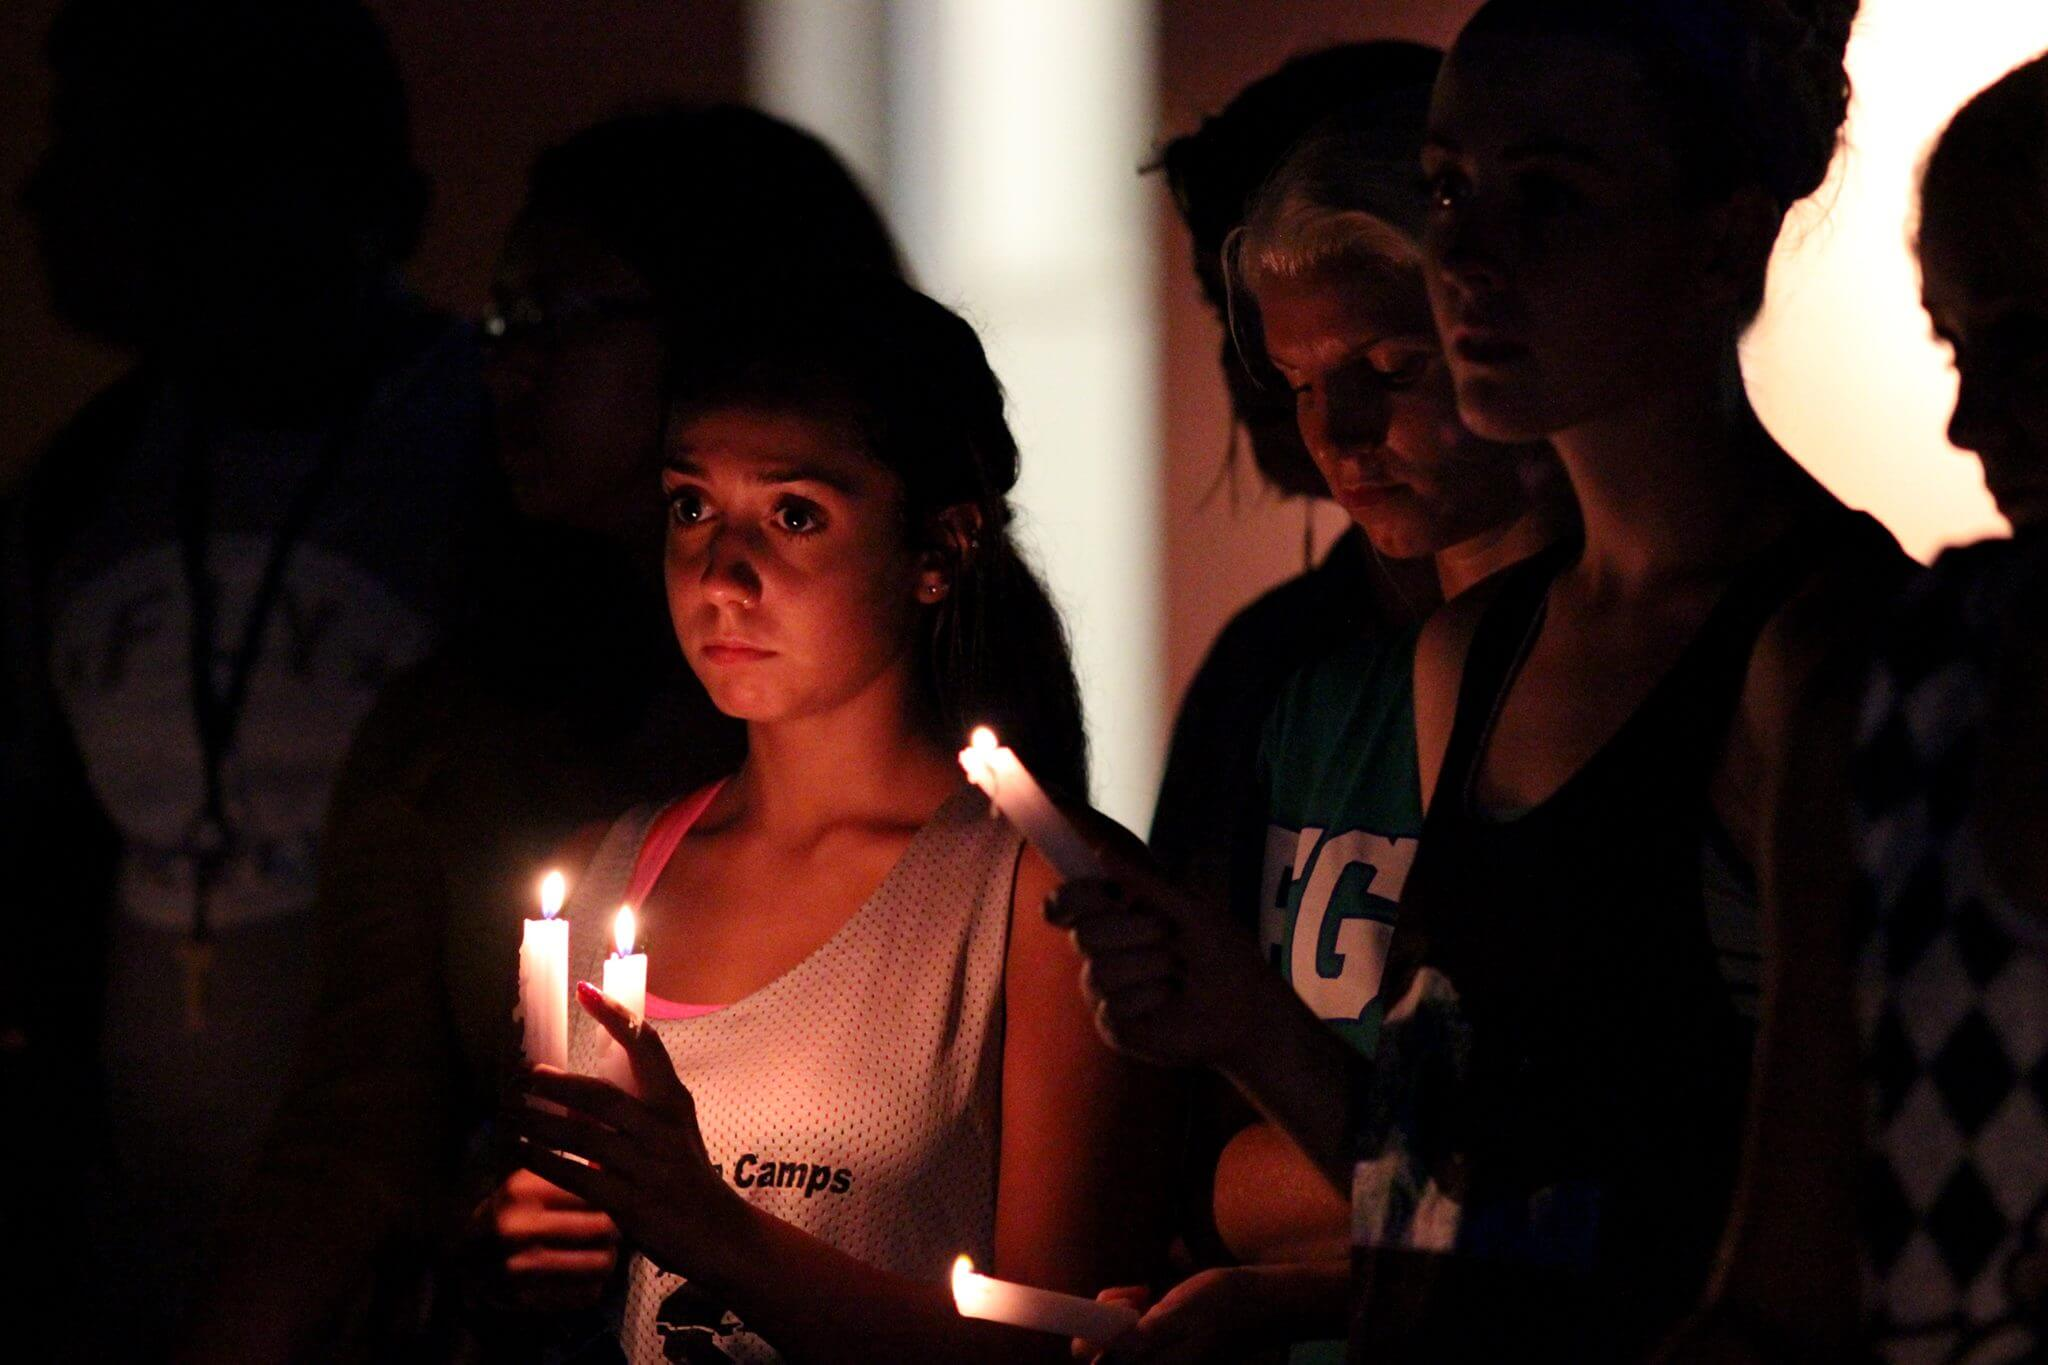 Candlelight vigil held  for student found dead